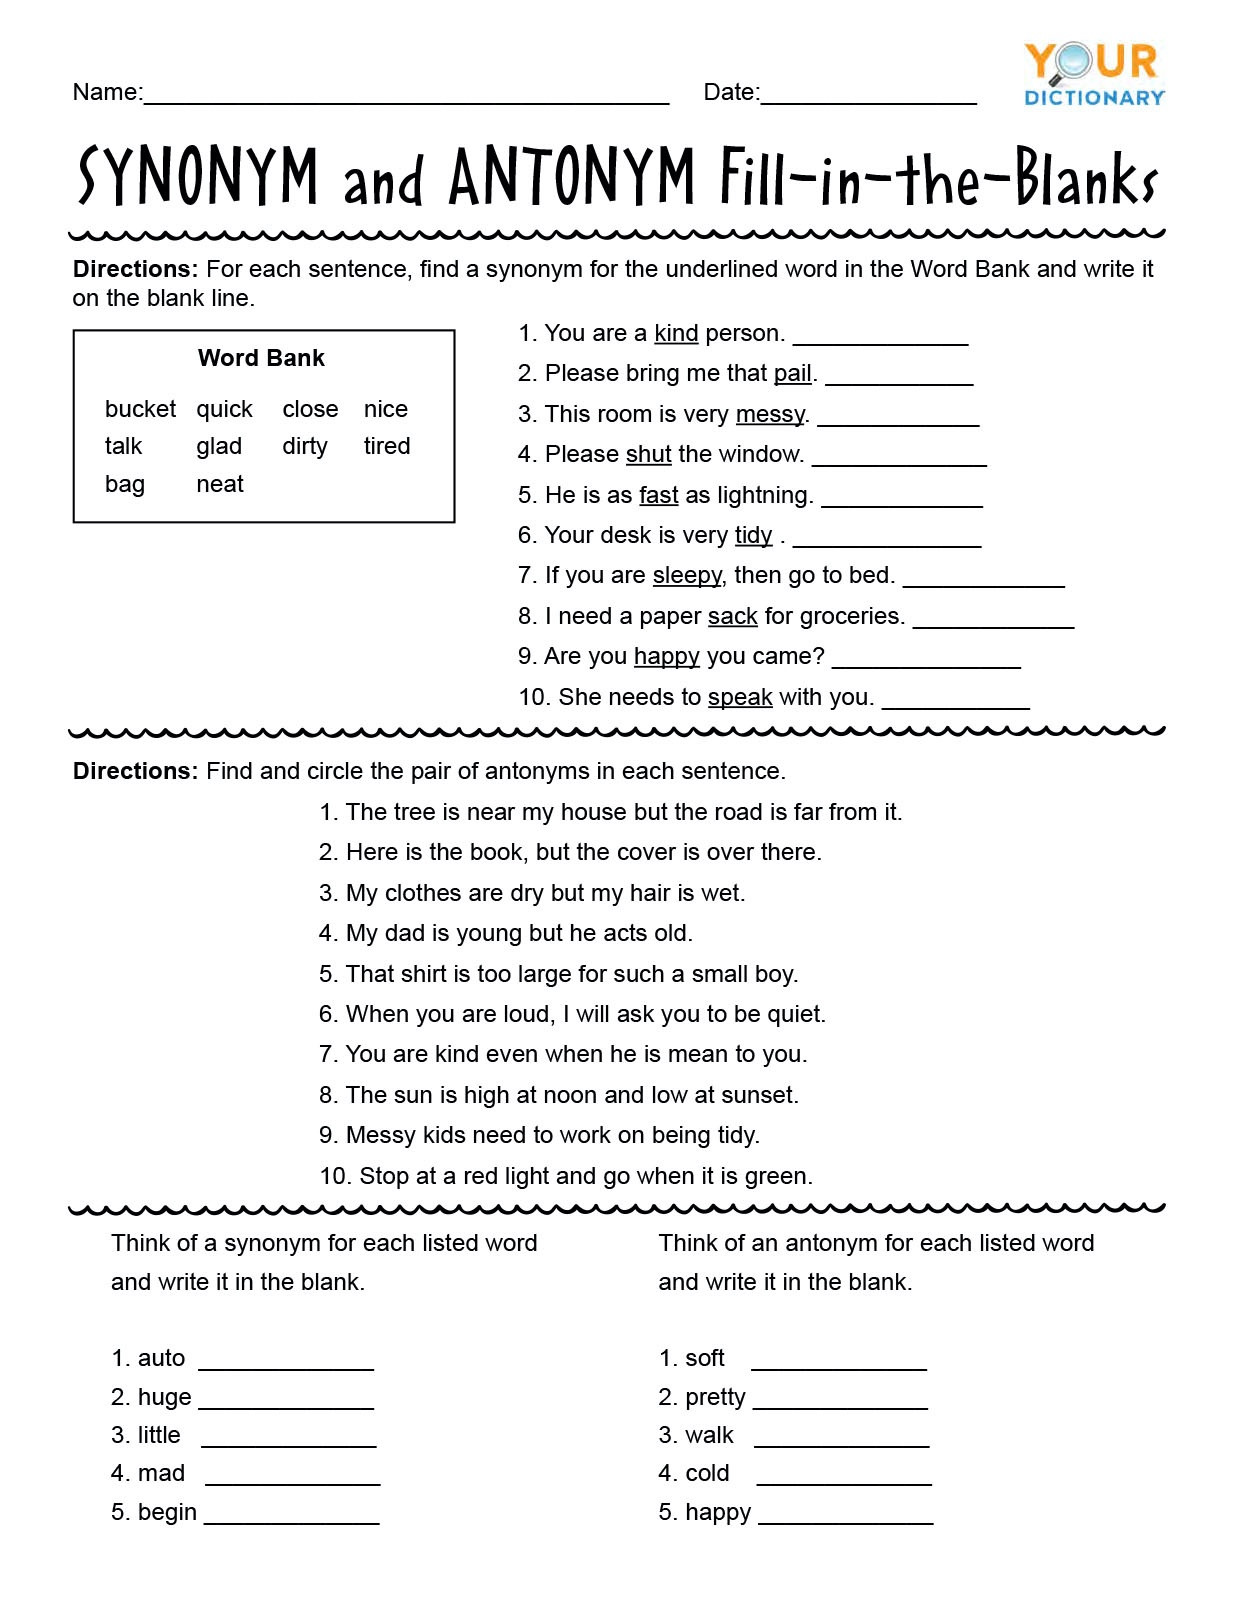 Vocabulary Worksheets for 1st Graders First Grade Synonyms and Antonyms Worksheets